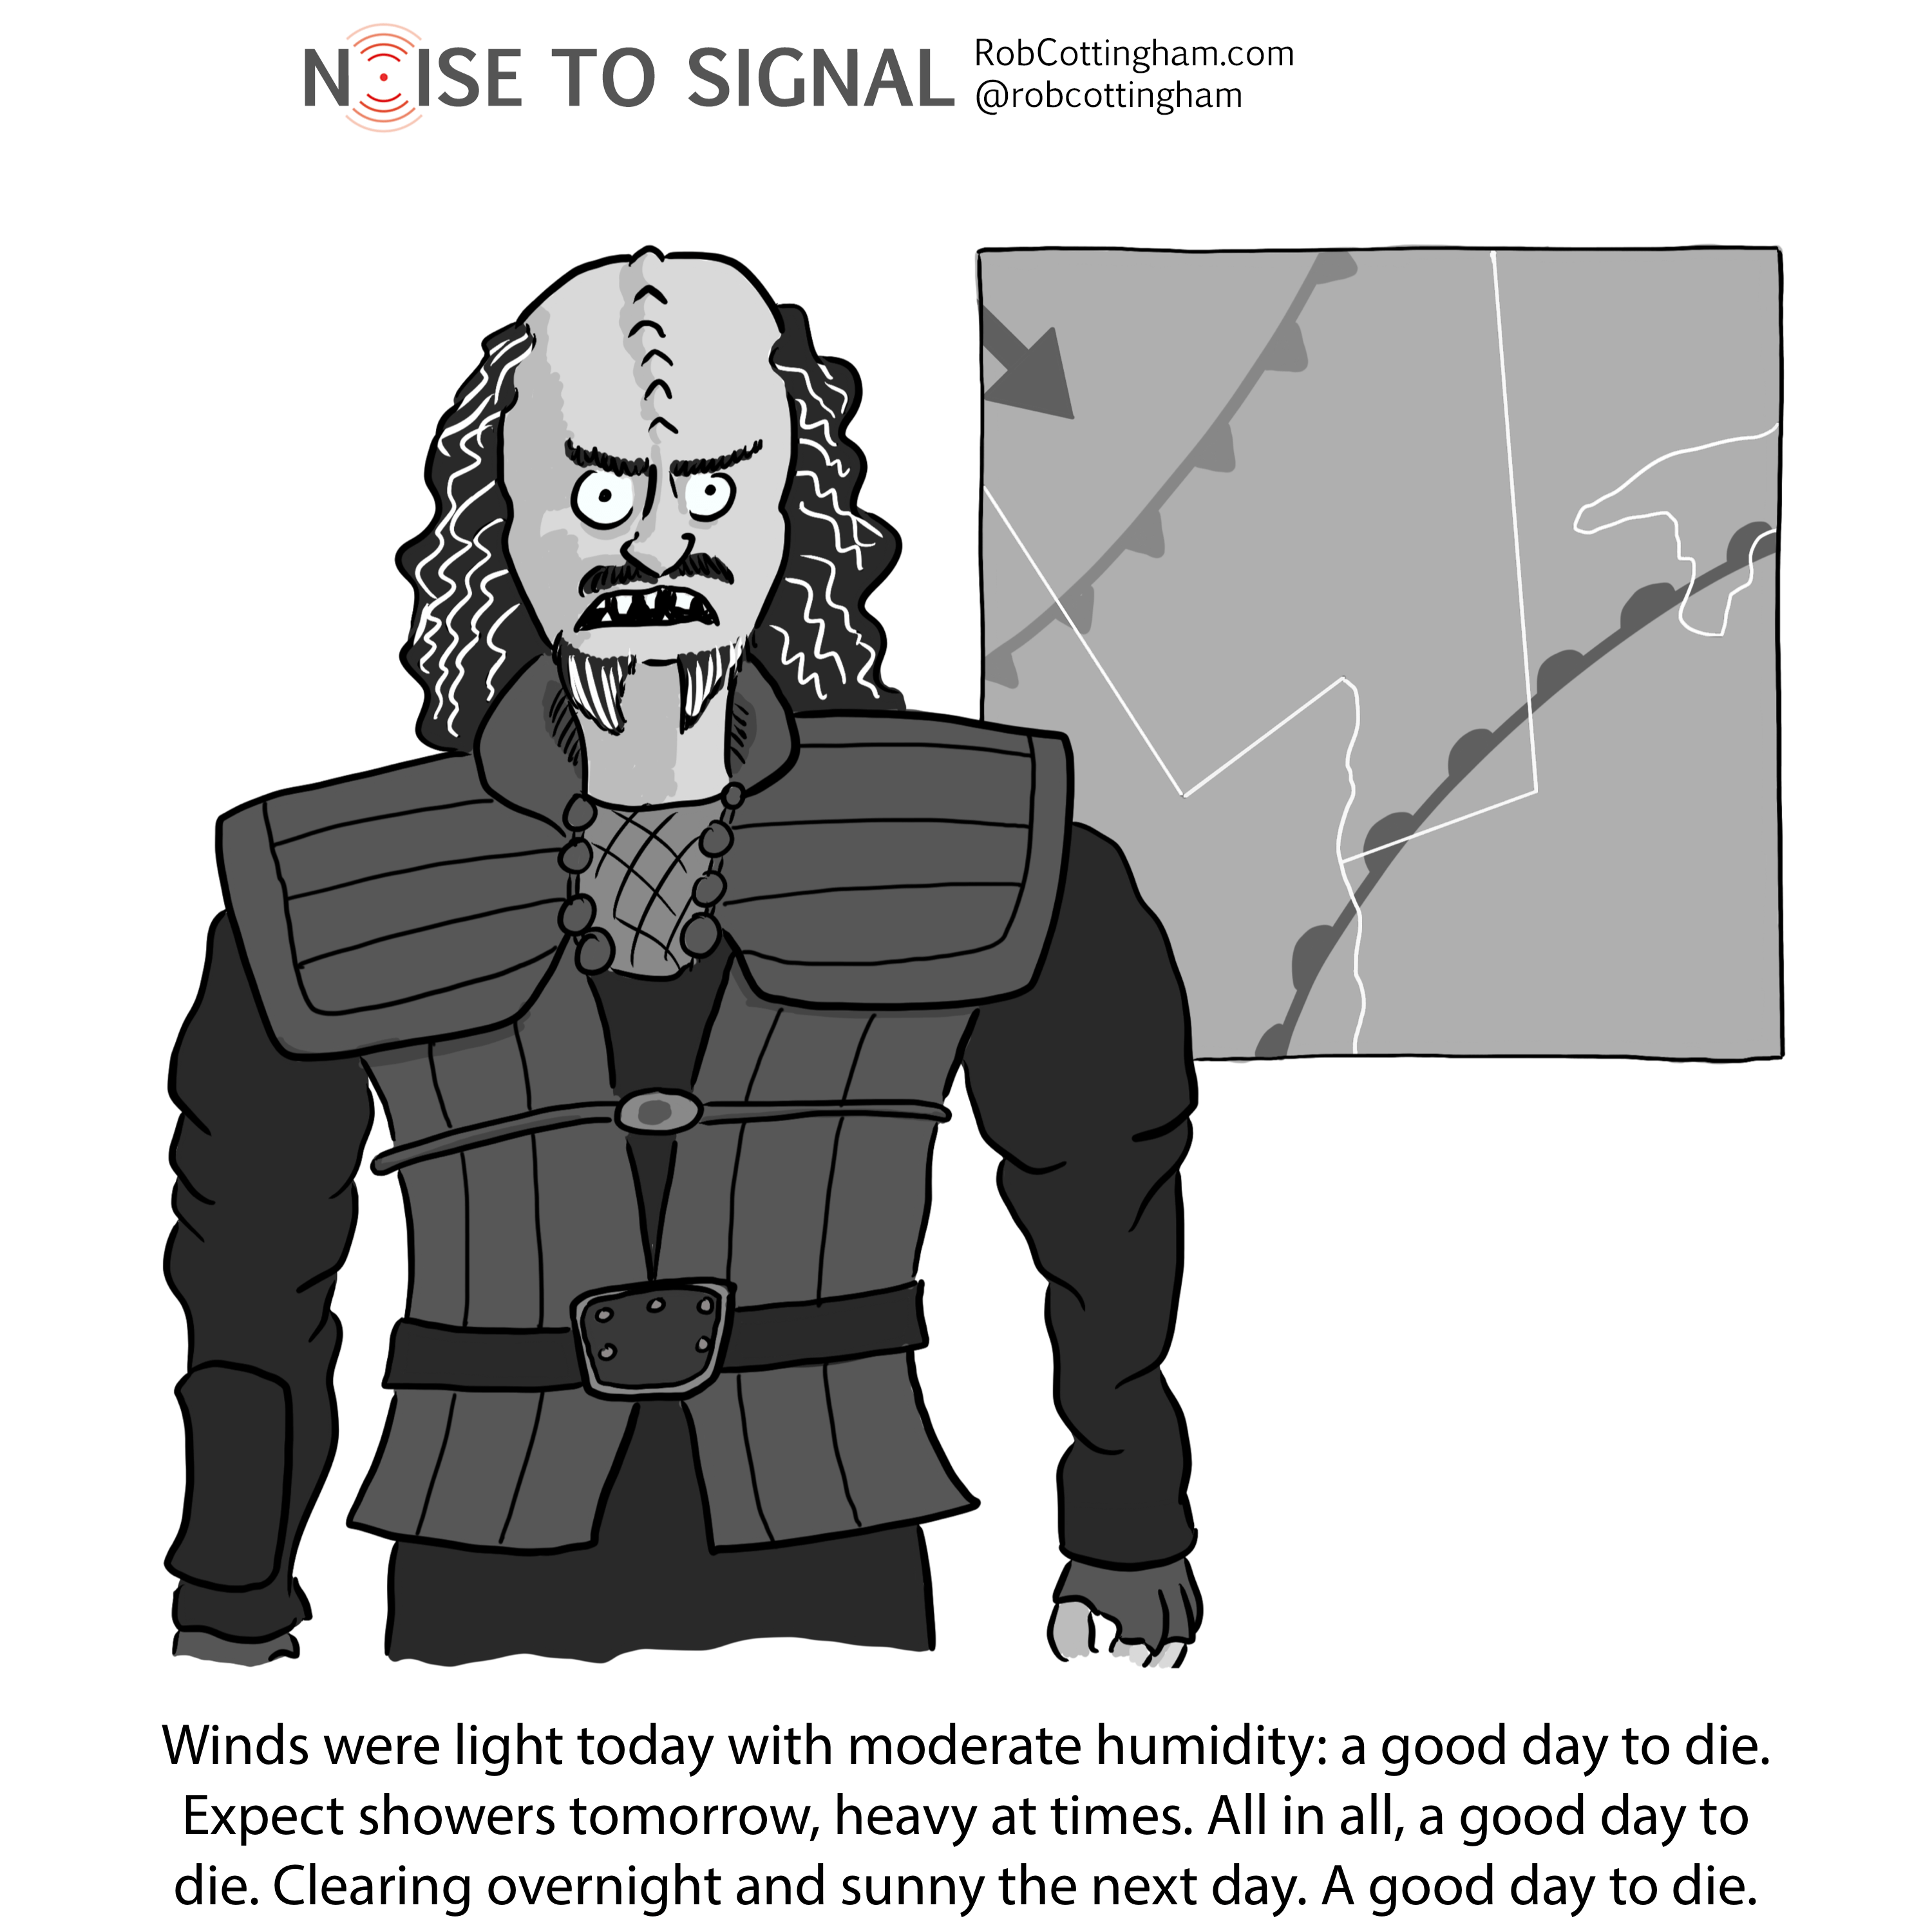 (A Klingon warrior delivers the weather forecast) Winds were light today with moderate humidity: a good day to die. Expect showers tomorrow, heavy at times. All in all, a good day to die. Clearing overnight and sunny the next day. A good day to die.